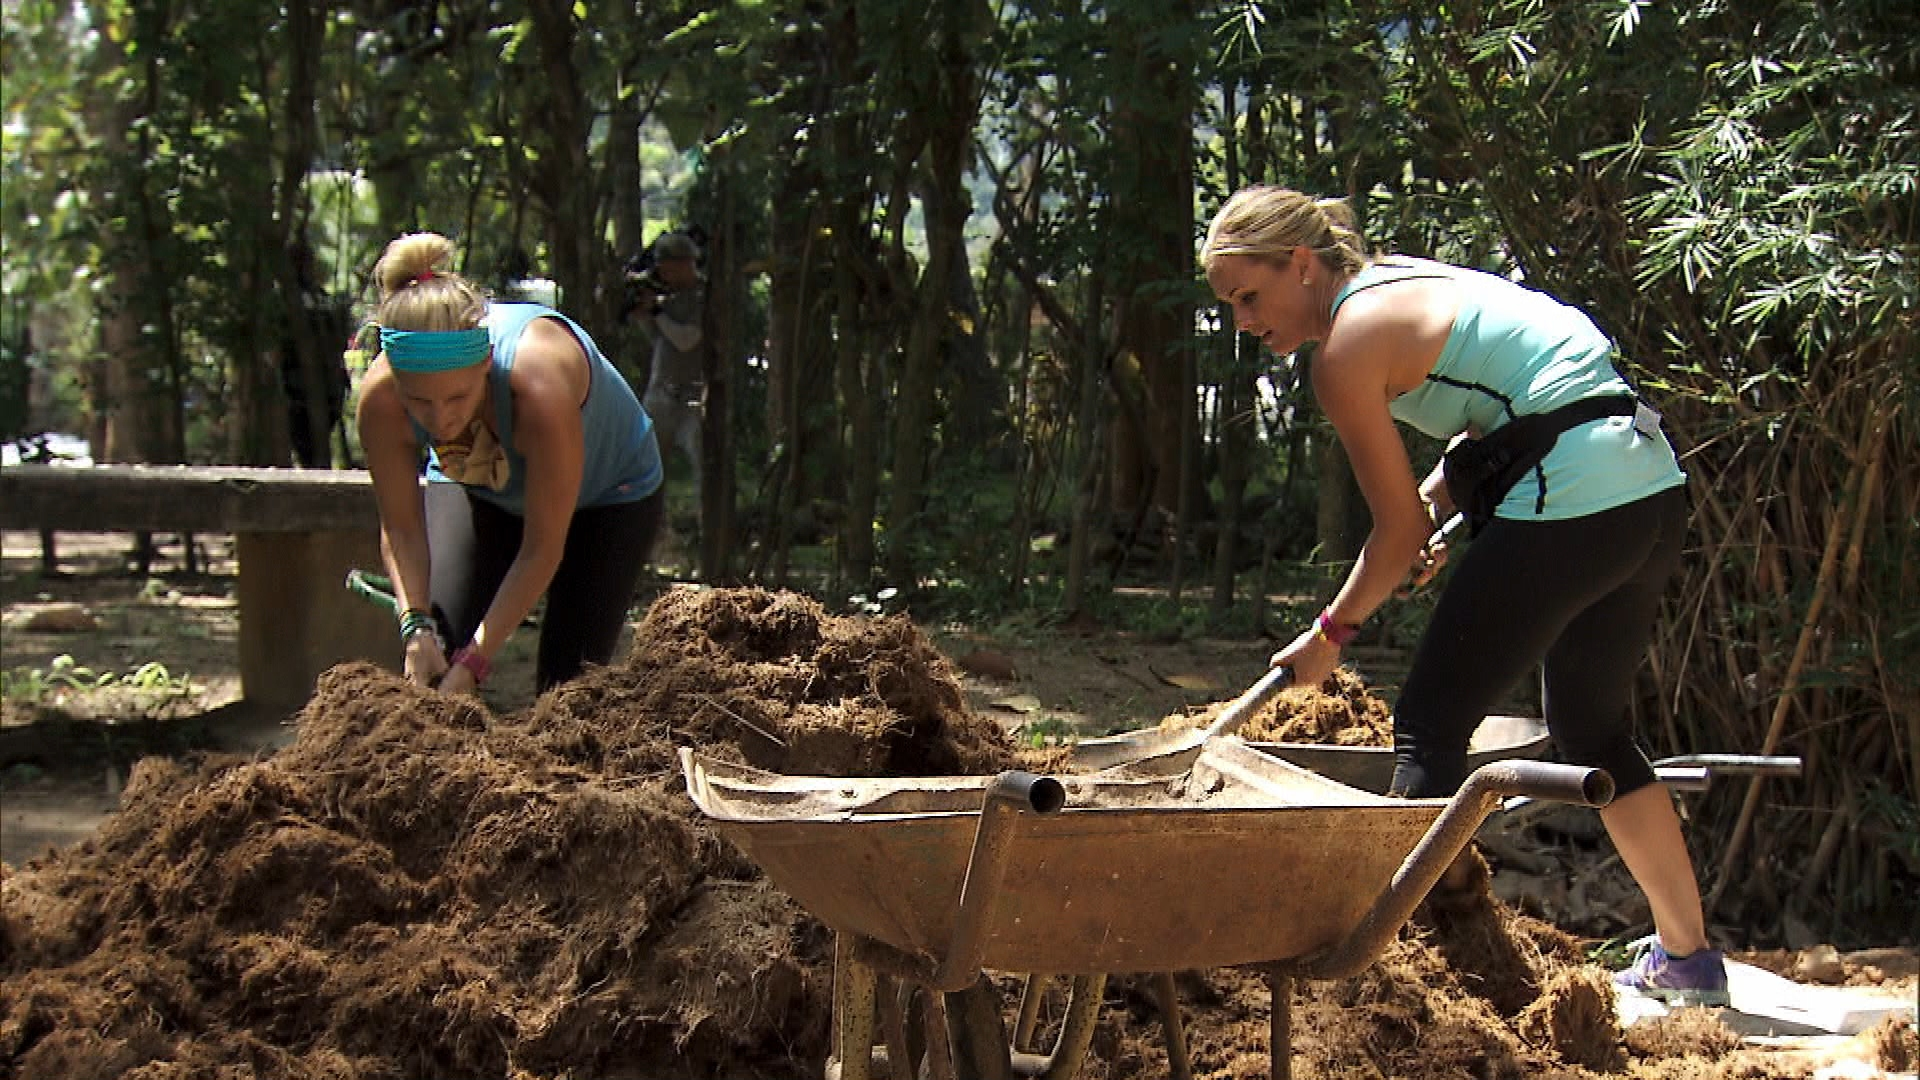 Jennifer and Caroline in Season 24 Episode 6